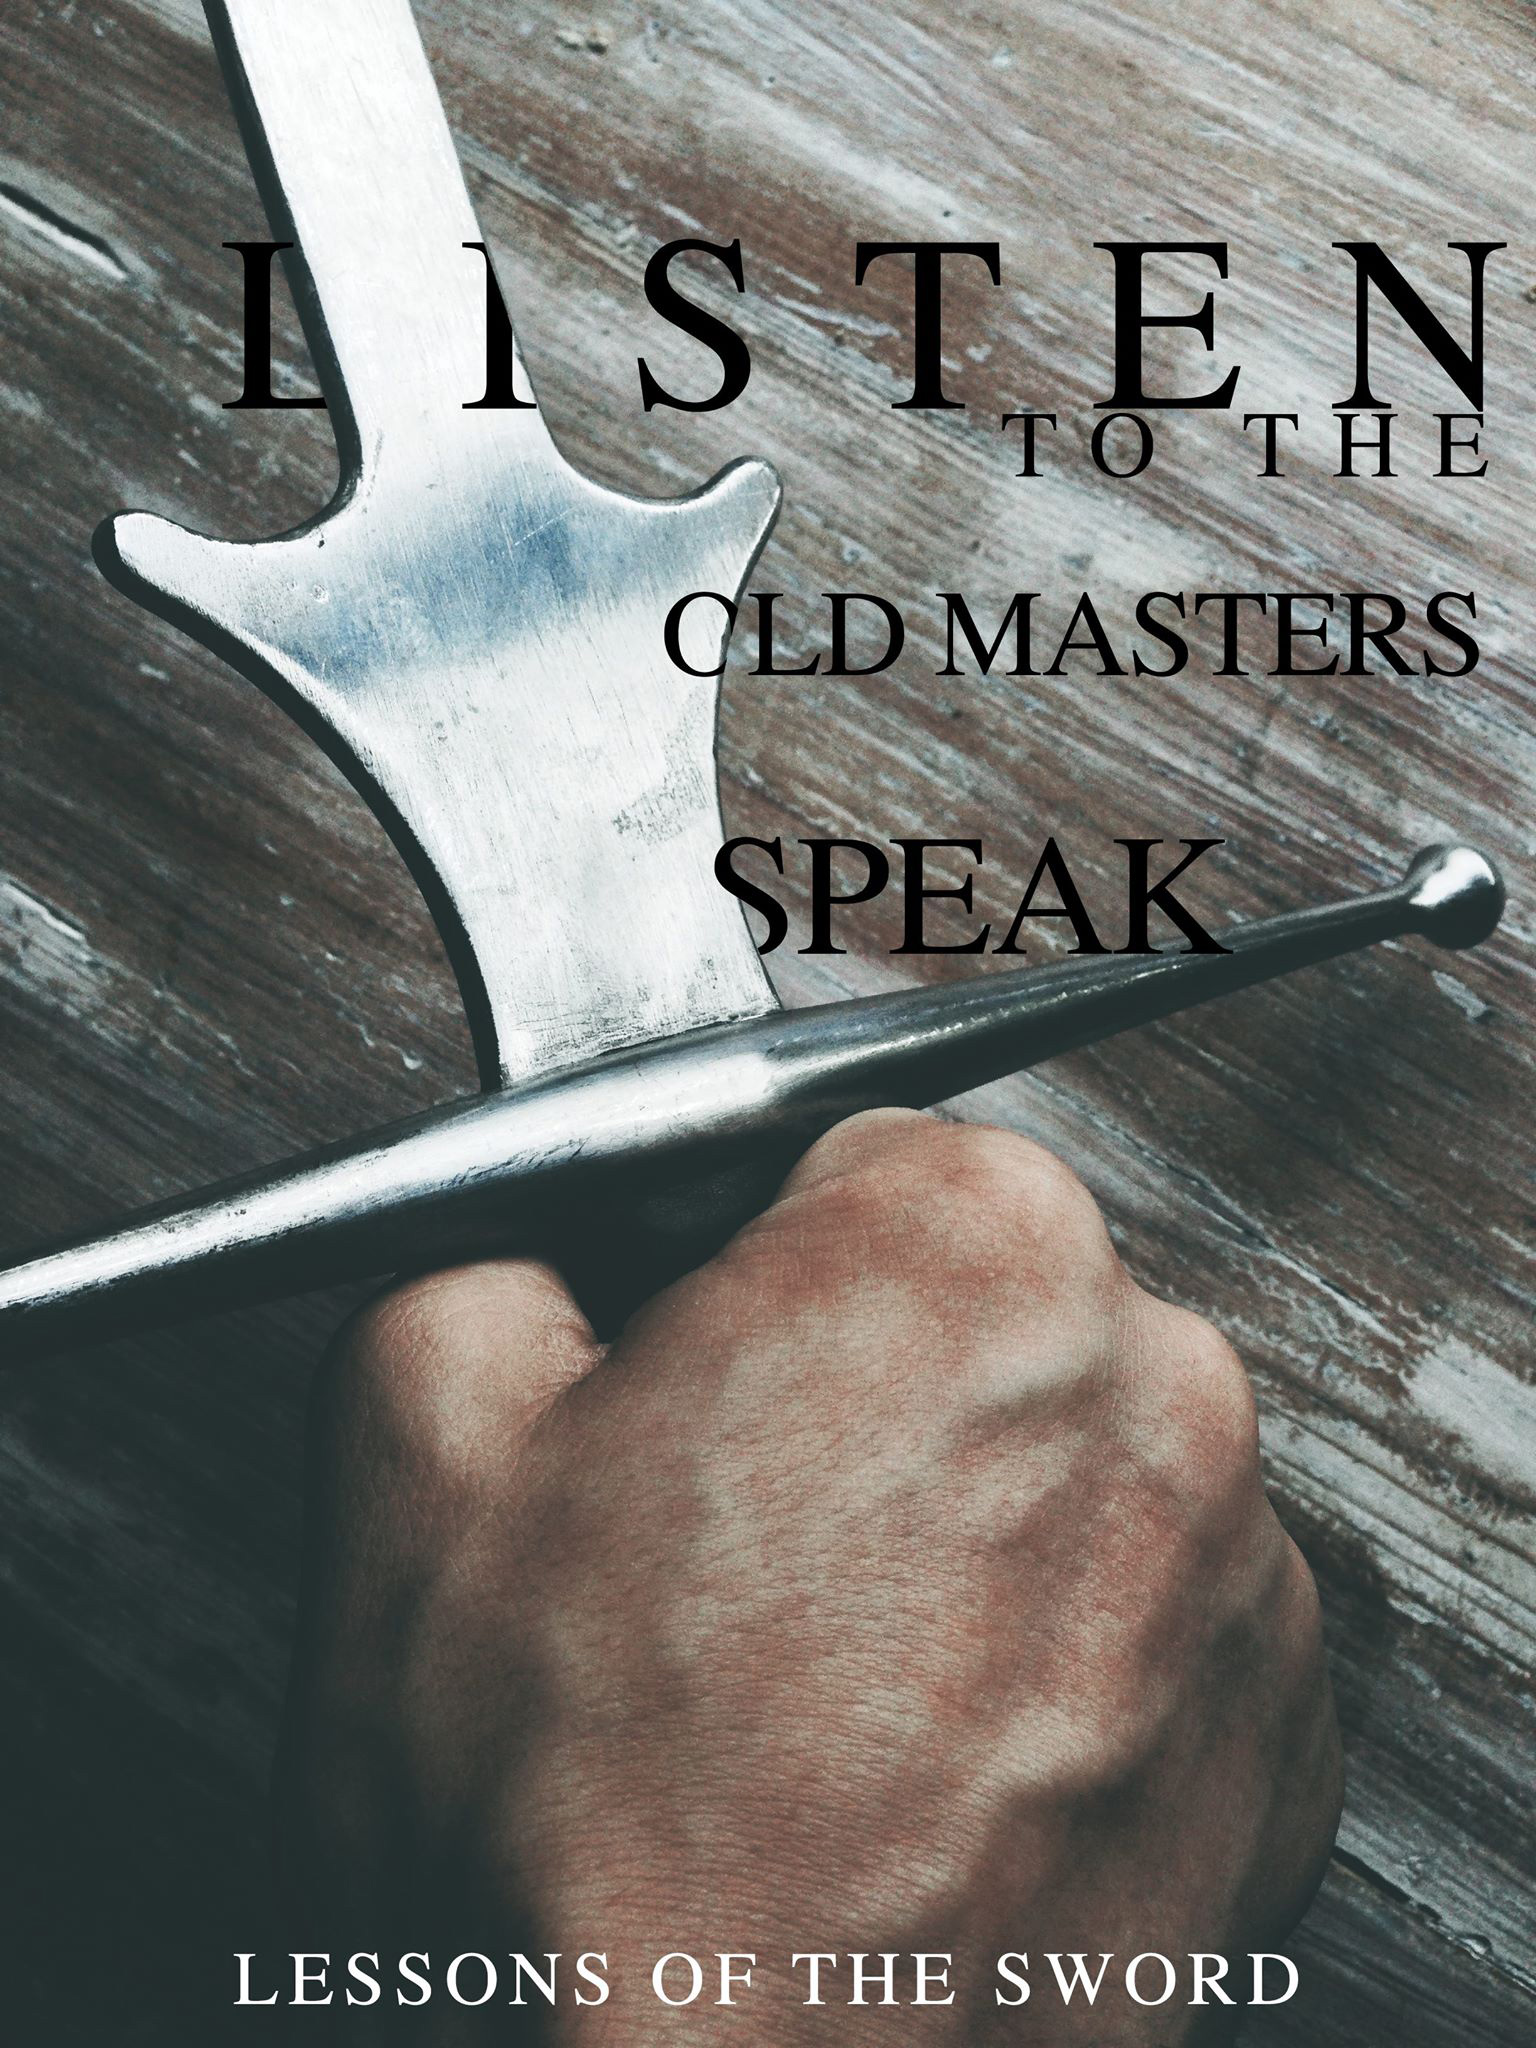 Listen to the old masters speak – Lessons of the sword